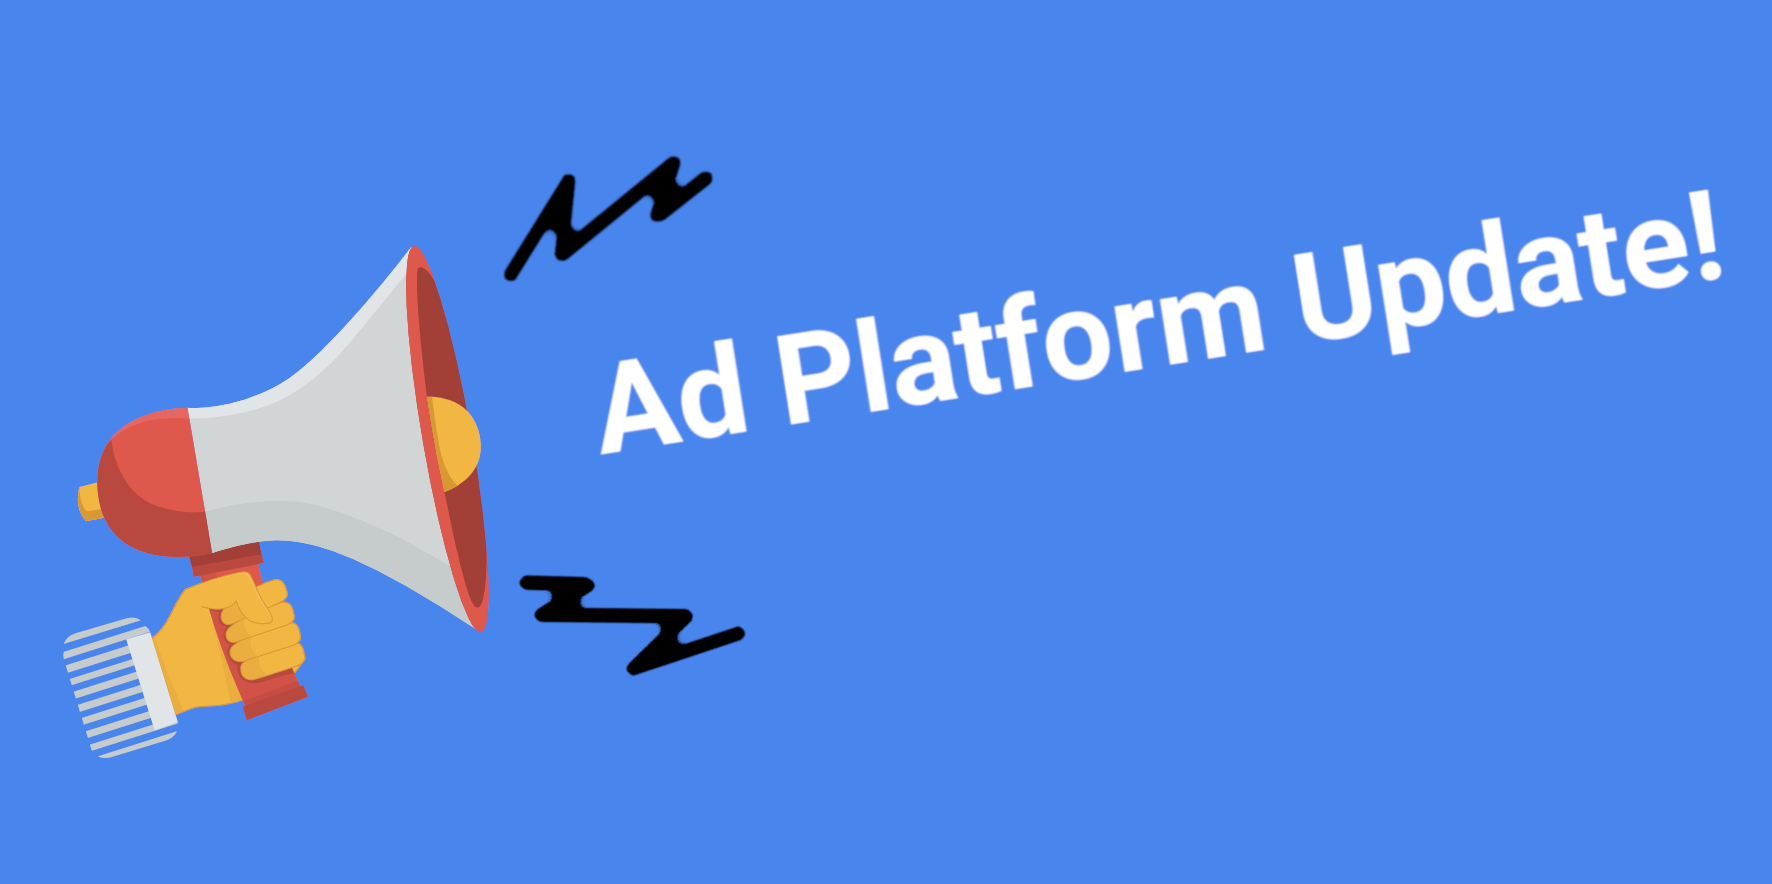 Major Search Update for Dynamic Creative Ad Platform